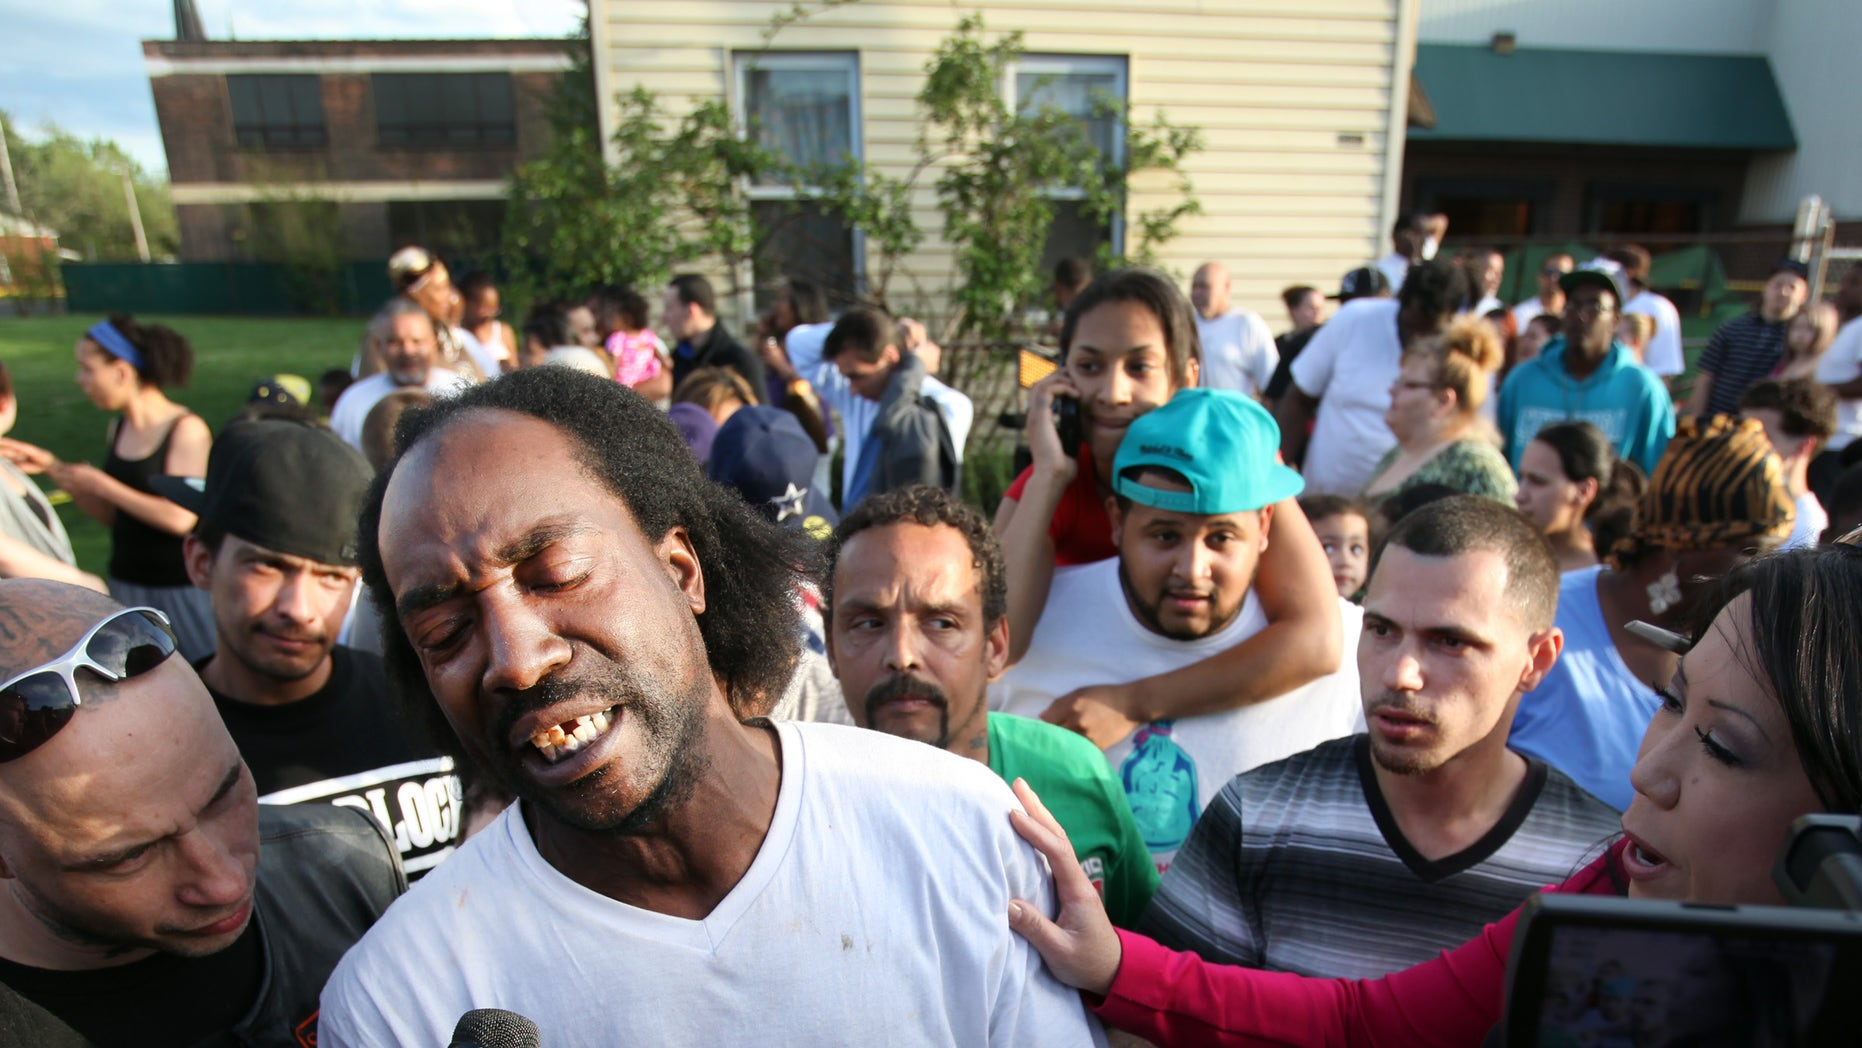 FILE - This May 6, 2013 file photo shows neighbor Charles Ramsey speaking to media near the home where missing women Amanda Berry, Gina DeJesus and Michele Knight were rescued in Cleveland. Ramsey, the man who famously put down his Big Mac to help rescue three women held captive for a decade in an Ohio house will never have to pay for another burger in his hometown. Ramsey has been promised free burgers for life at more than a dozen Cleveland-area restaurants. (AP Photo/The Plain Dealer, Scott Shaw, File)